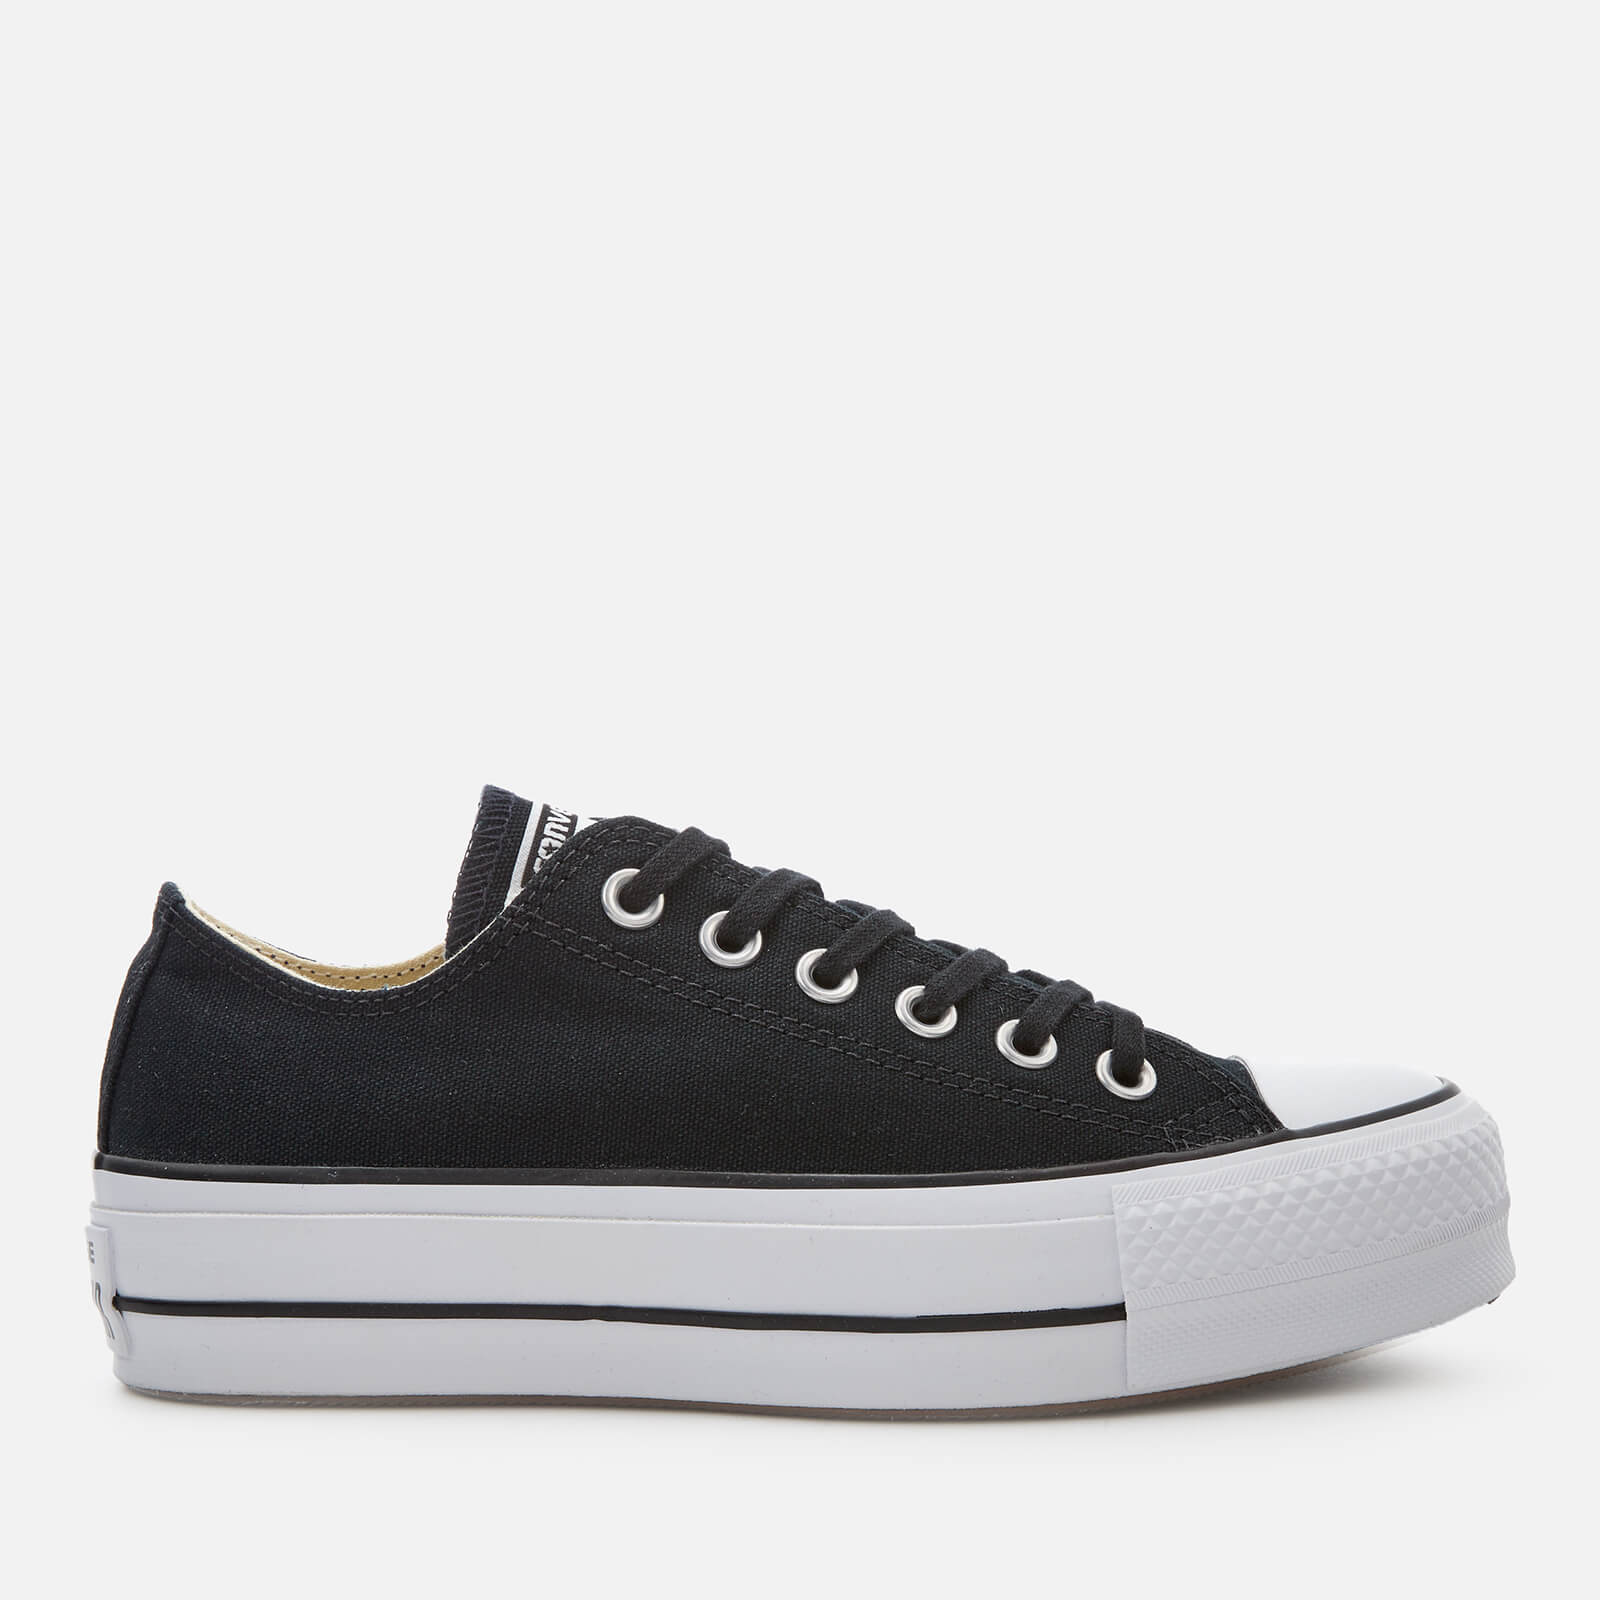 e1cc288f50f6 Converse Women s Chuck Taylor All Star Lift Ox Trainers - Black White  Womens Footwear